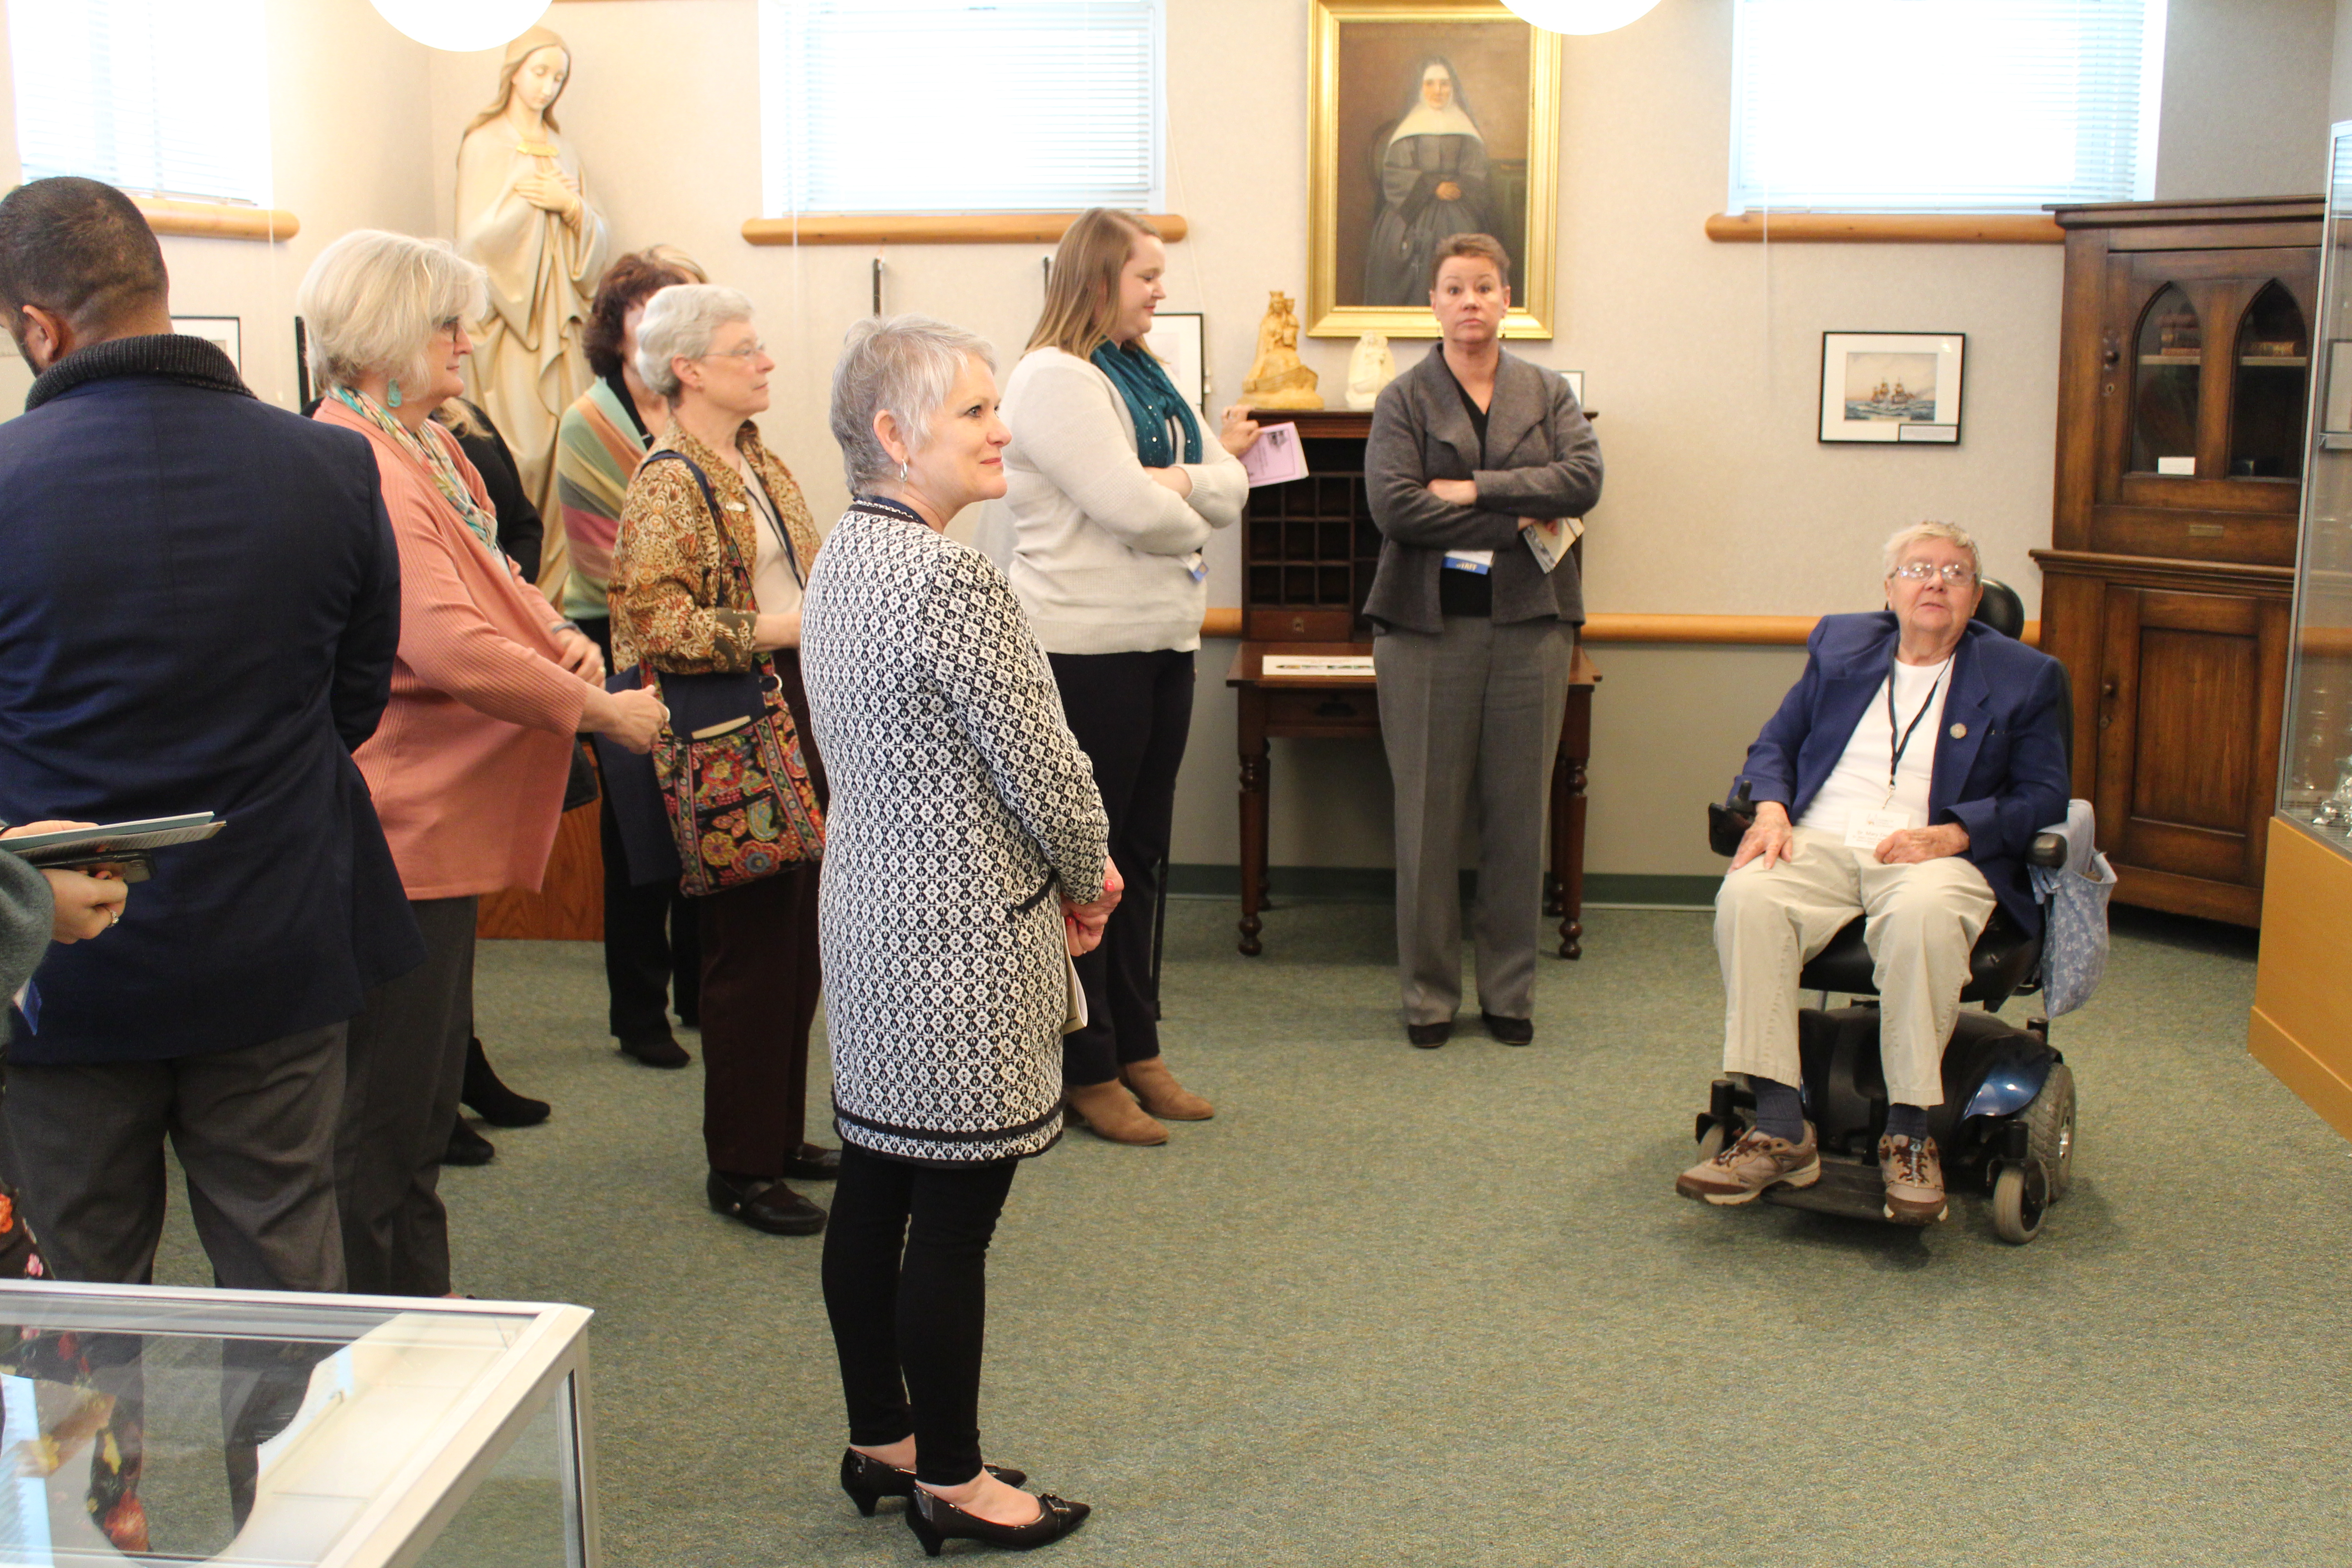 Sister Mary Denis Maher, CSA, shows attendees around the Heritage Room at Mt. Augustine